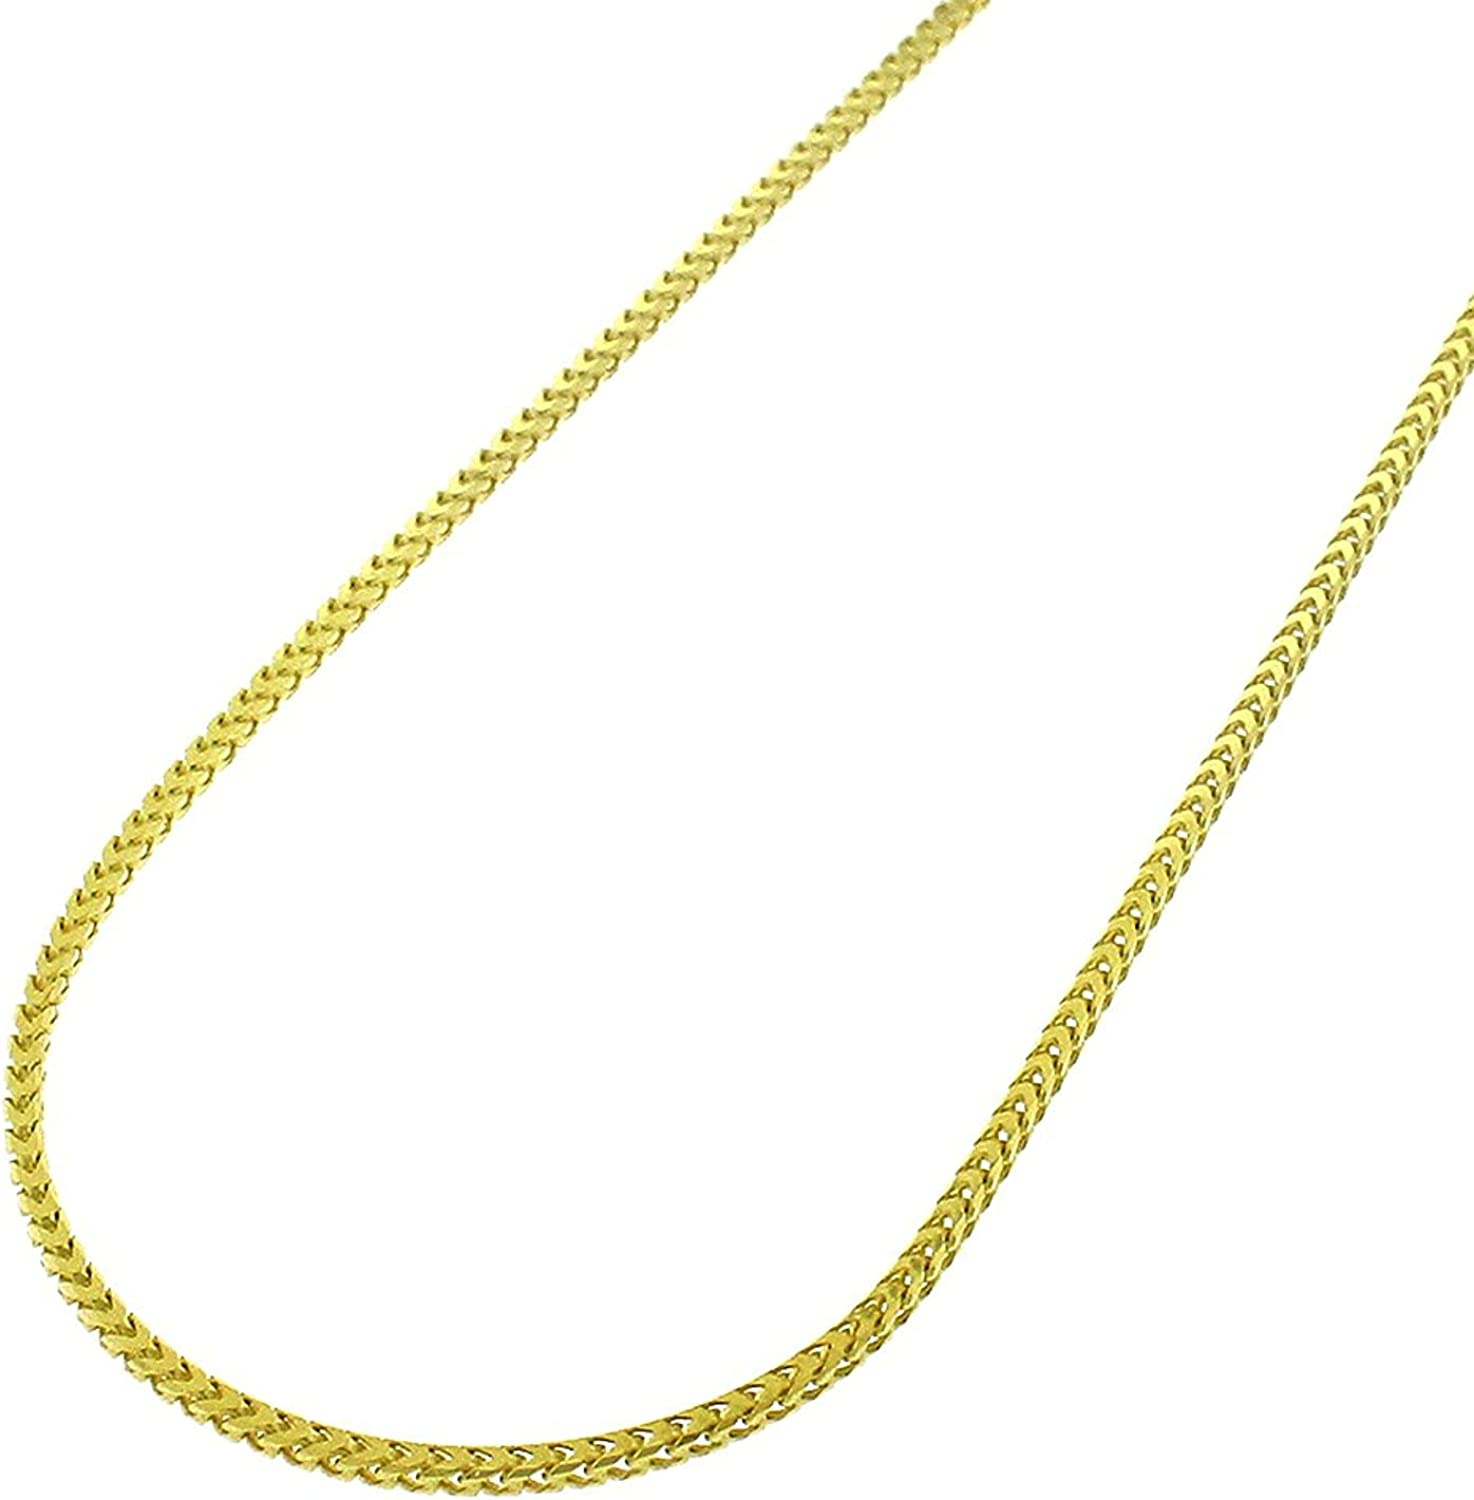 In Style Designz Men /& Women 14K Yellow Gold 1mm Solid Franco Square Box Link Necklace Chain 16-24